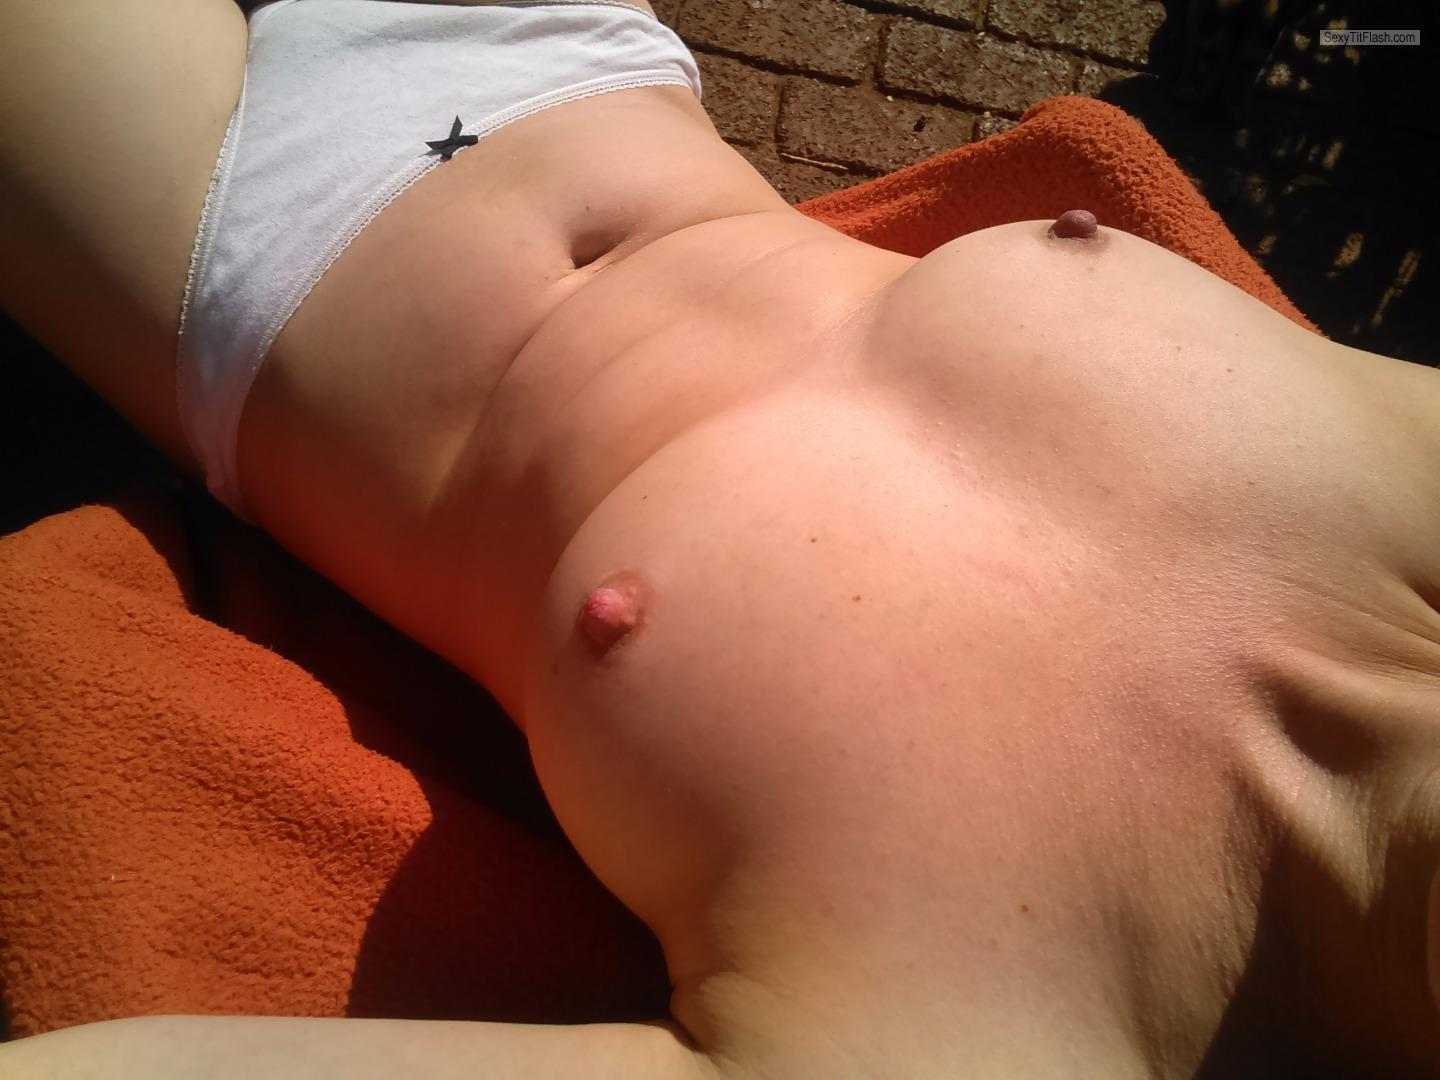 Tit Flash: My Small Tits (Selfie) - Summersun from United Kingdom